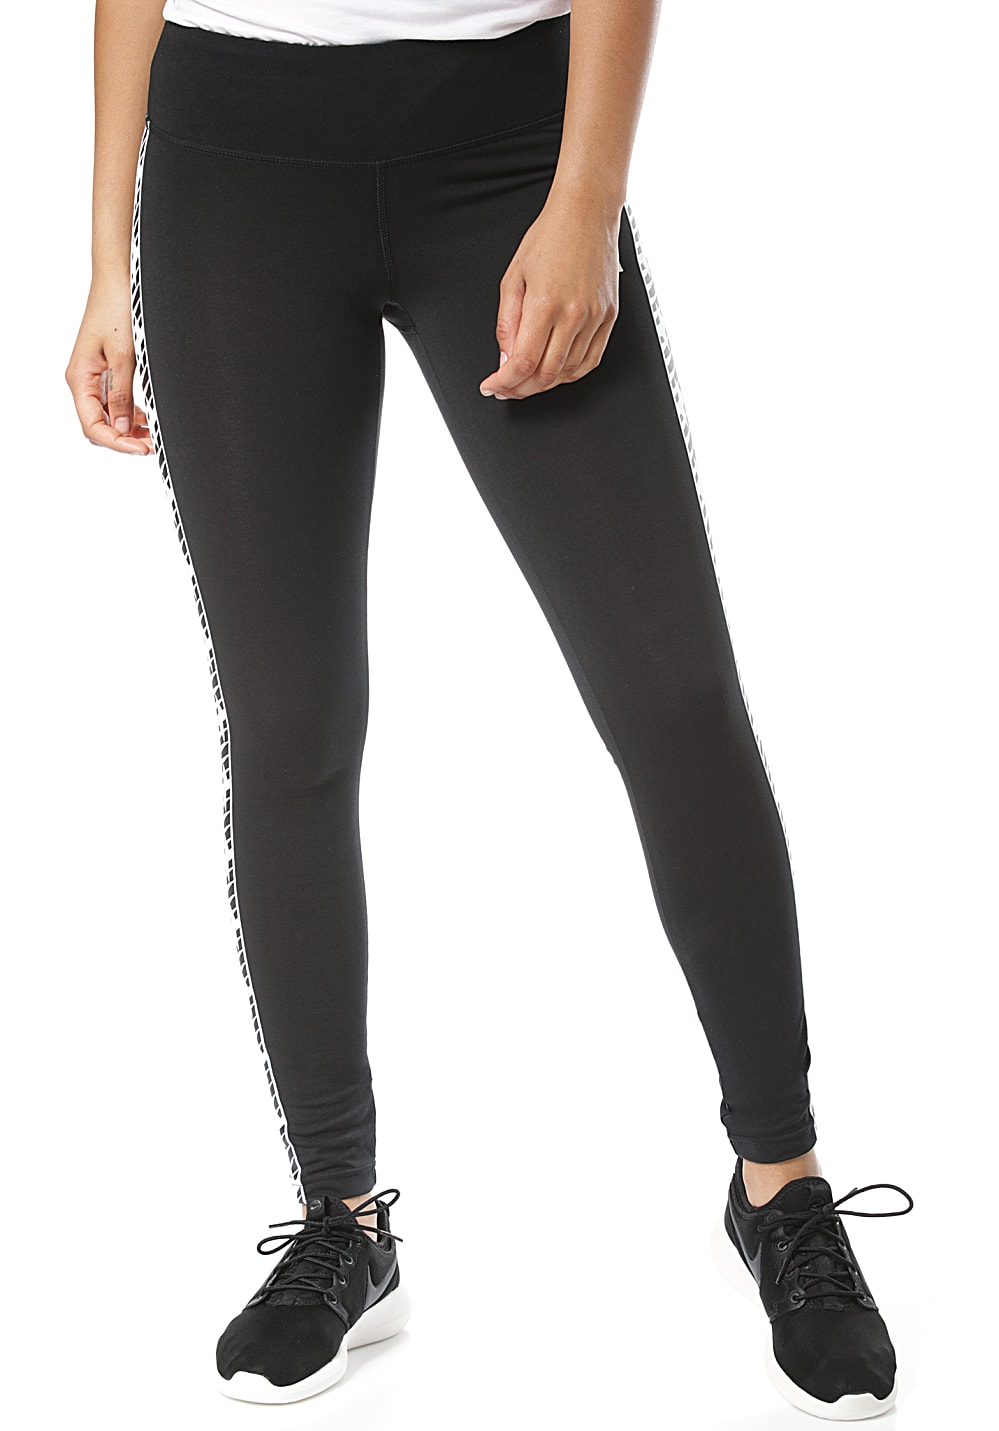 Hosen - NEW BALANCE WP93560 Leggings für Damen Schwarz  - Onlineshop Planet Sports